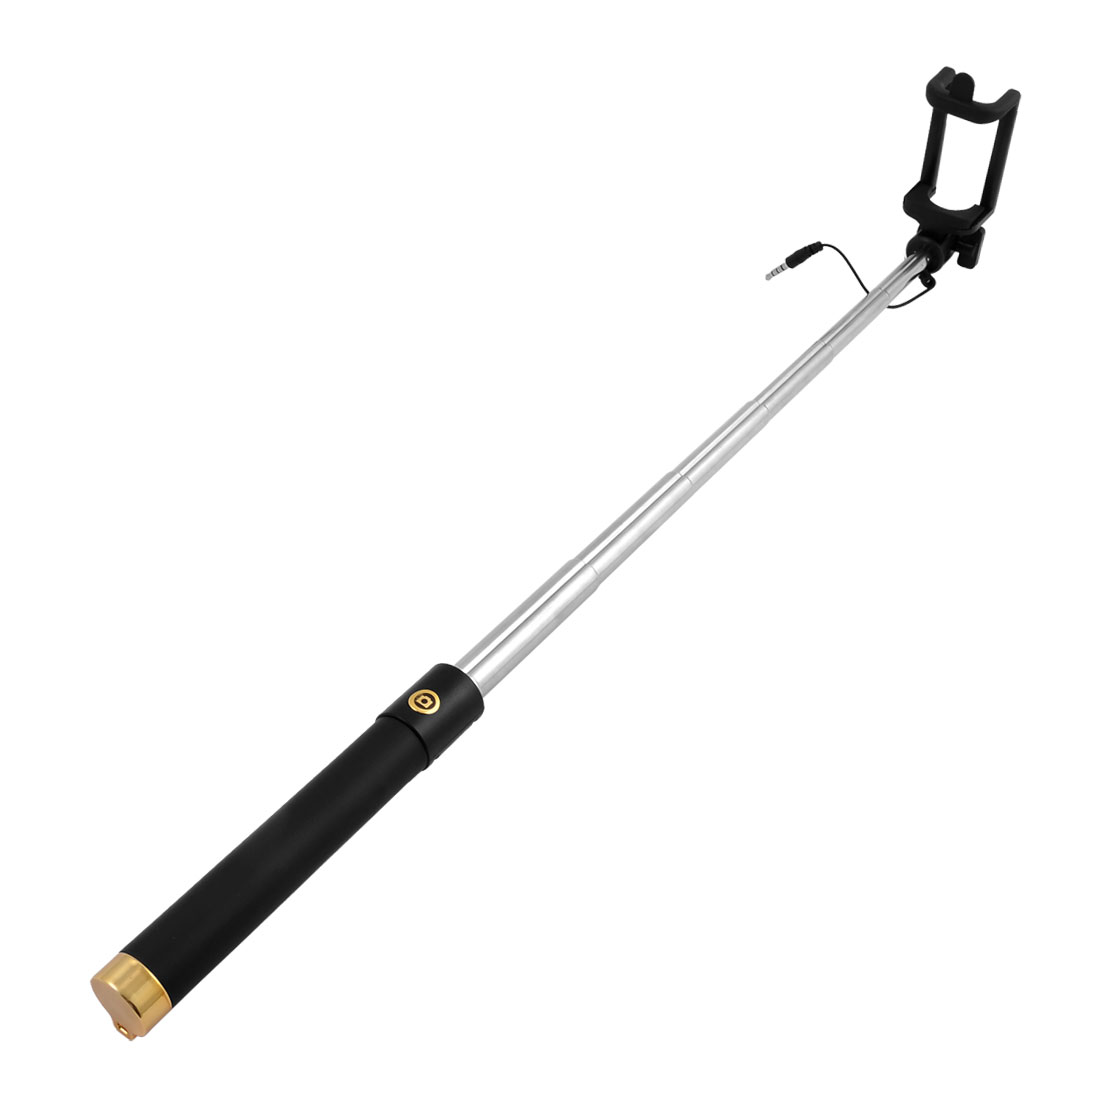 Phone Handheld Extendable Telescopic 6 Sections Selfie Stick Gold Tone